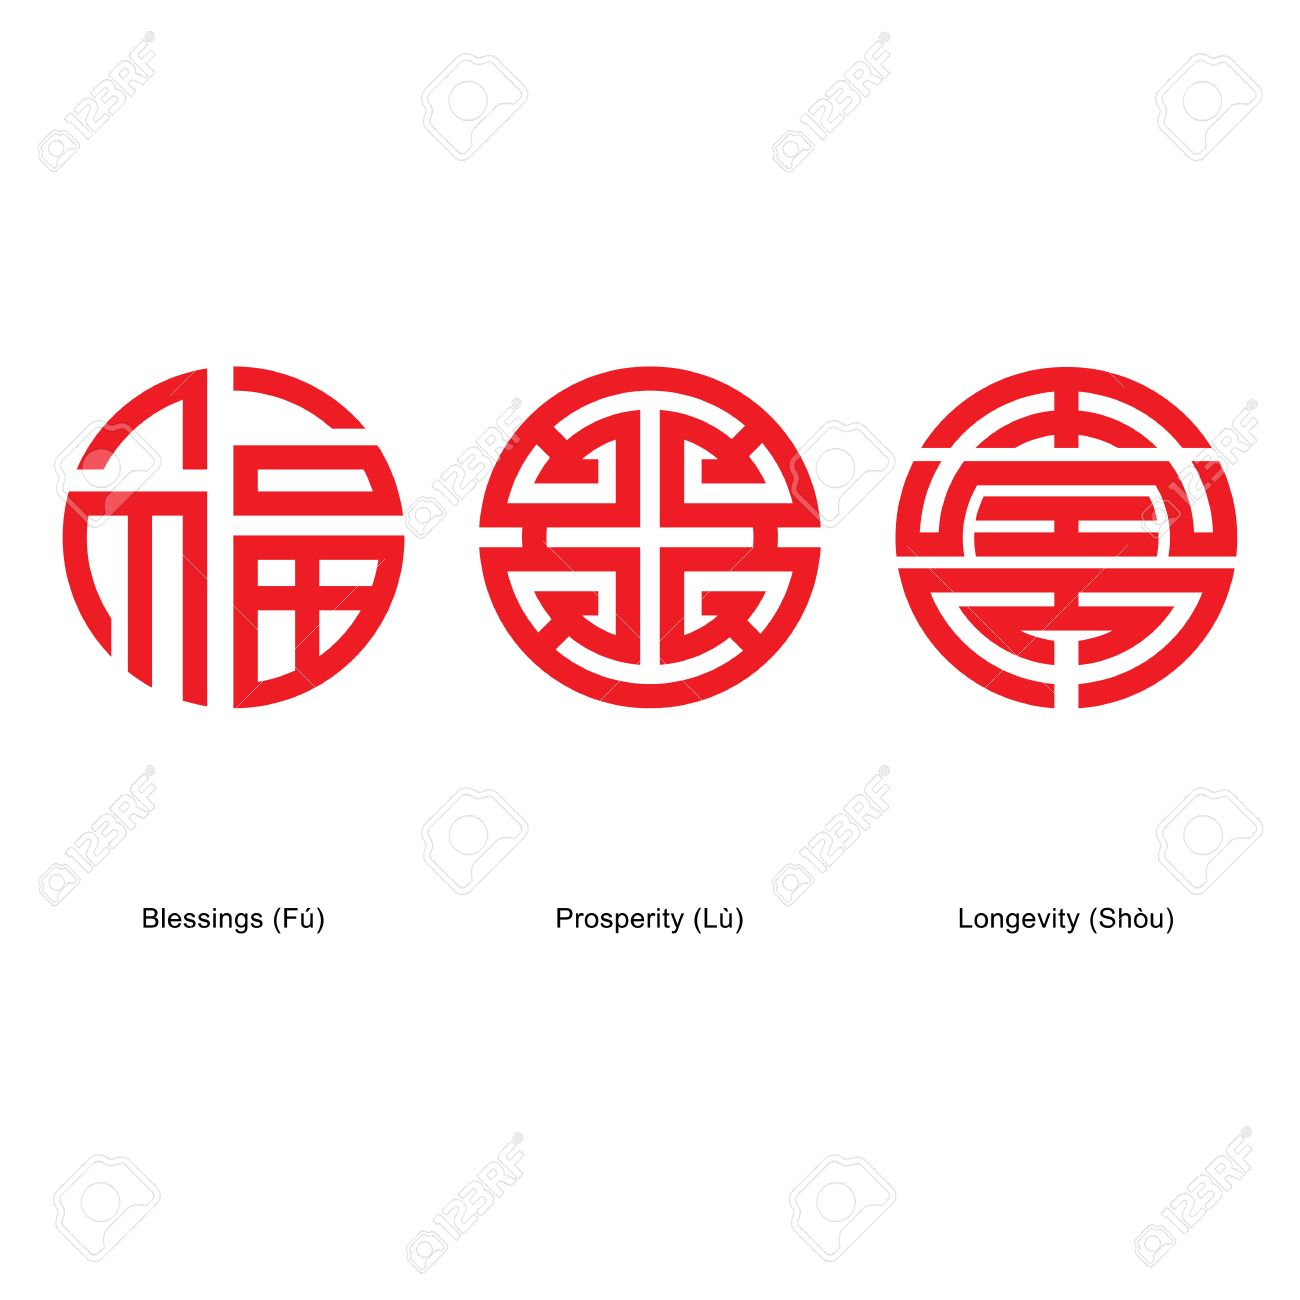 Chinese lucky symbols : Fu Lu Shou Stock Vector - 45911632